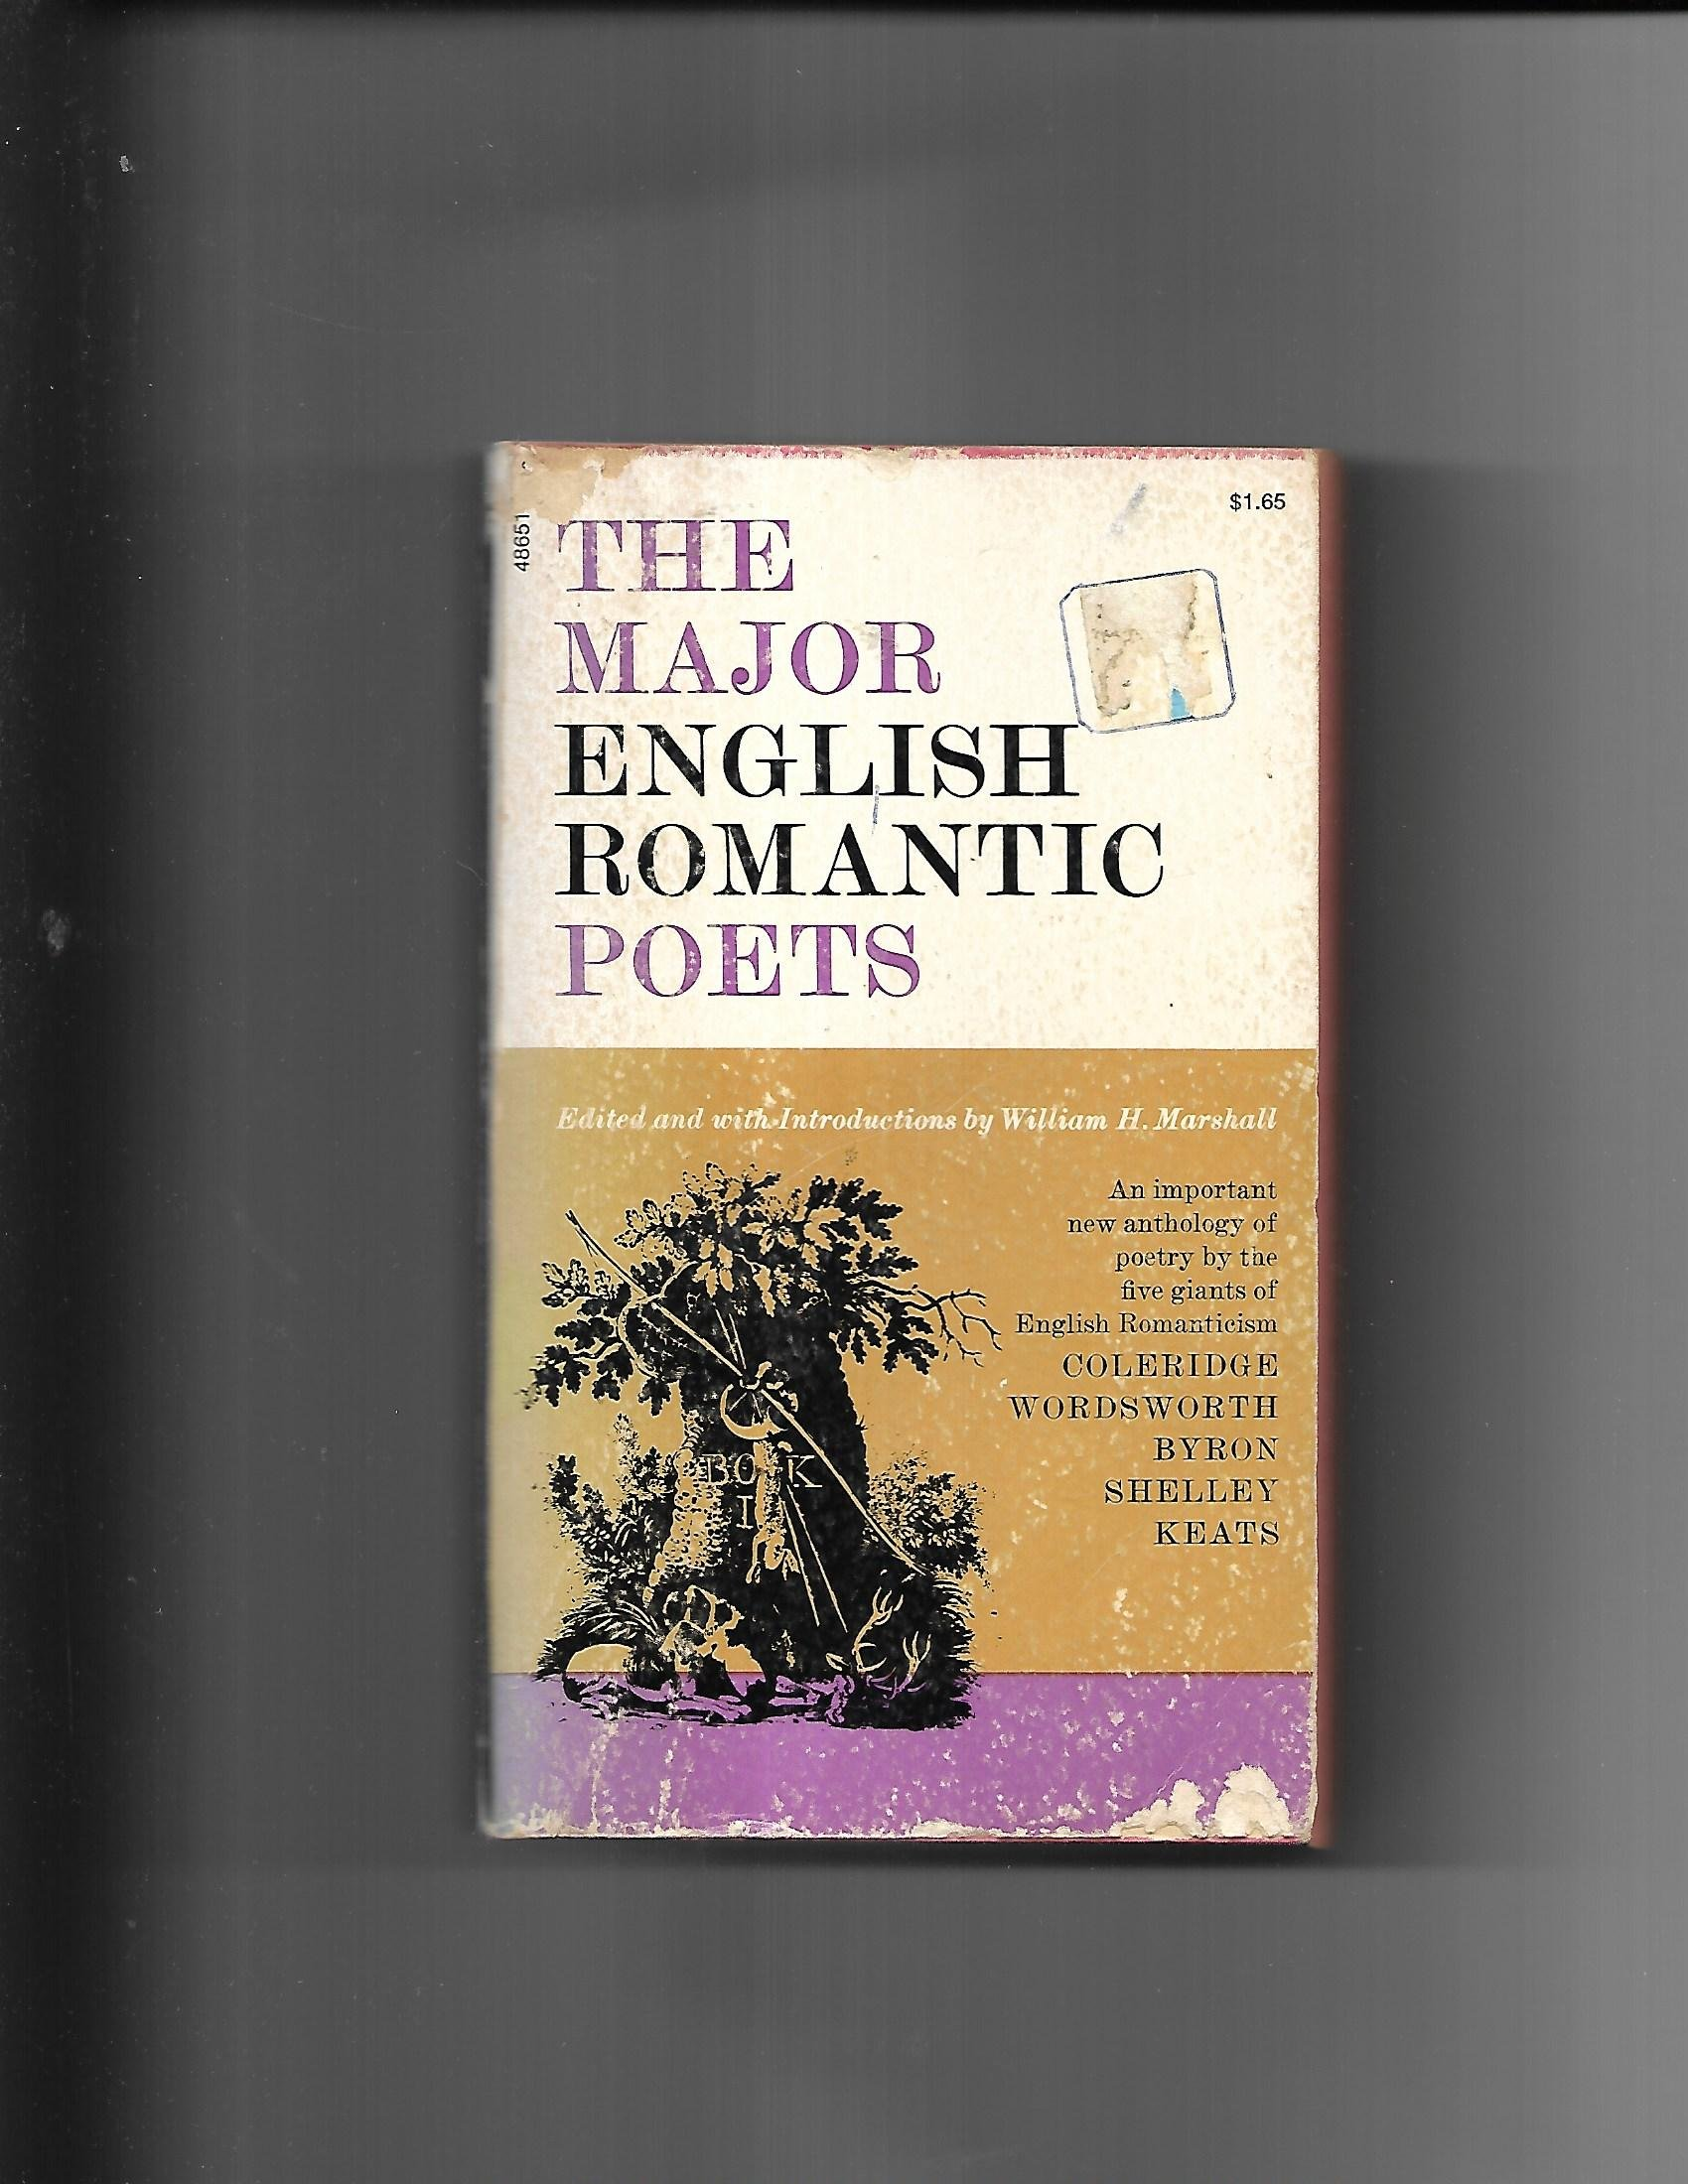 The Major English Romantic Poets: Samuel Taylor Coleridge, William  Wordsworth, Lord Byron George Gordon, Percy Bysshe Shelley, John Keats, ...